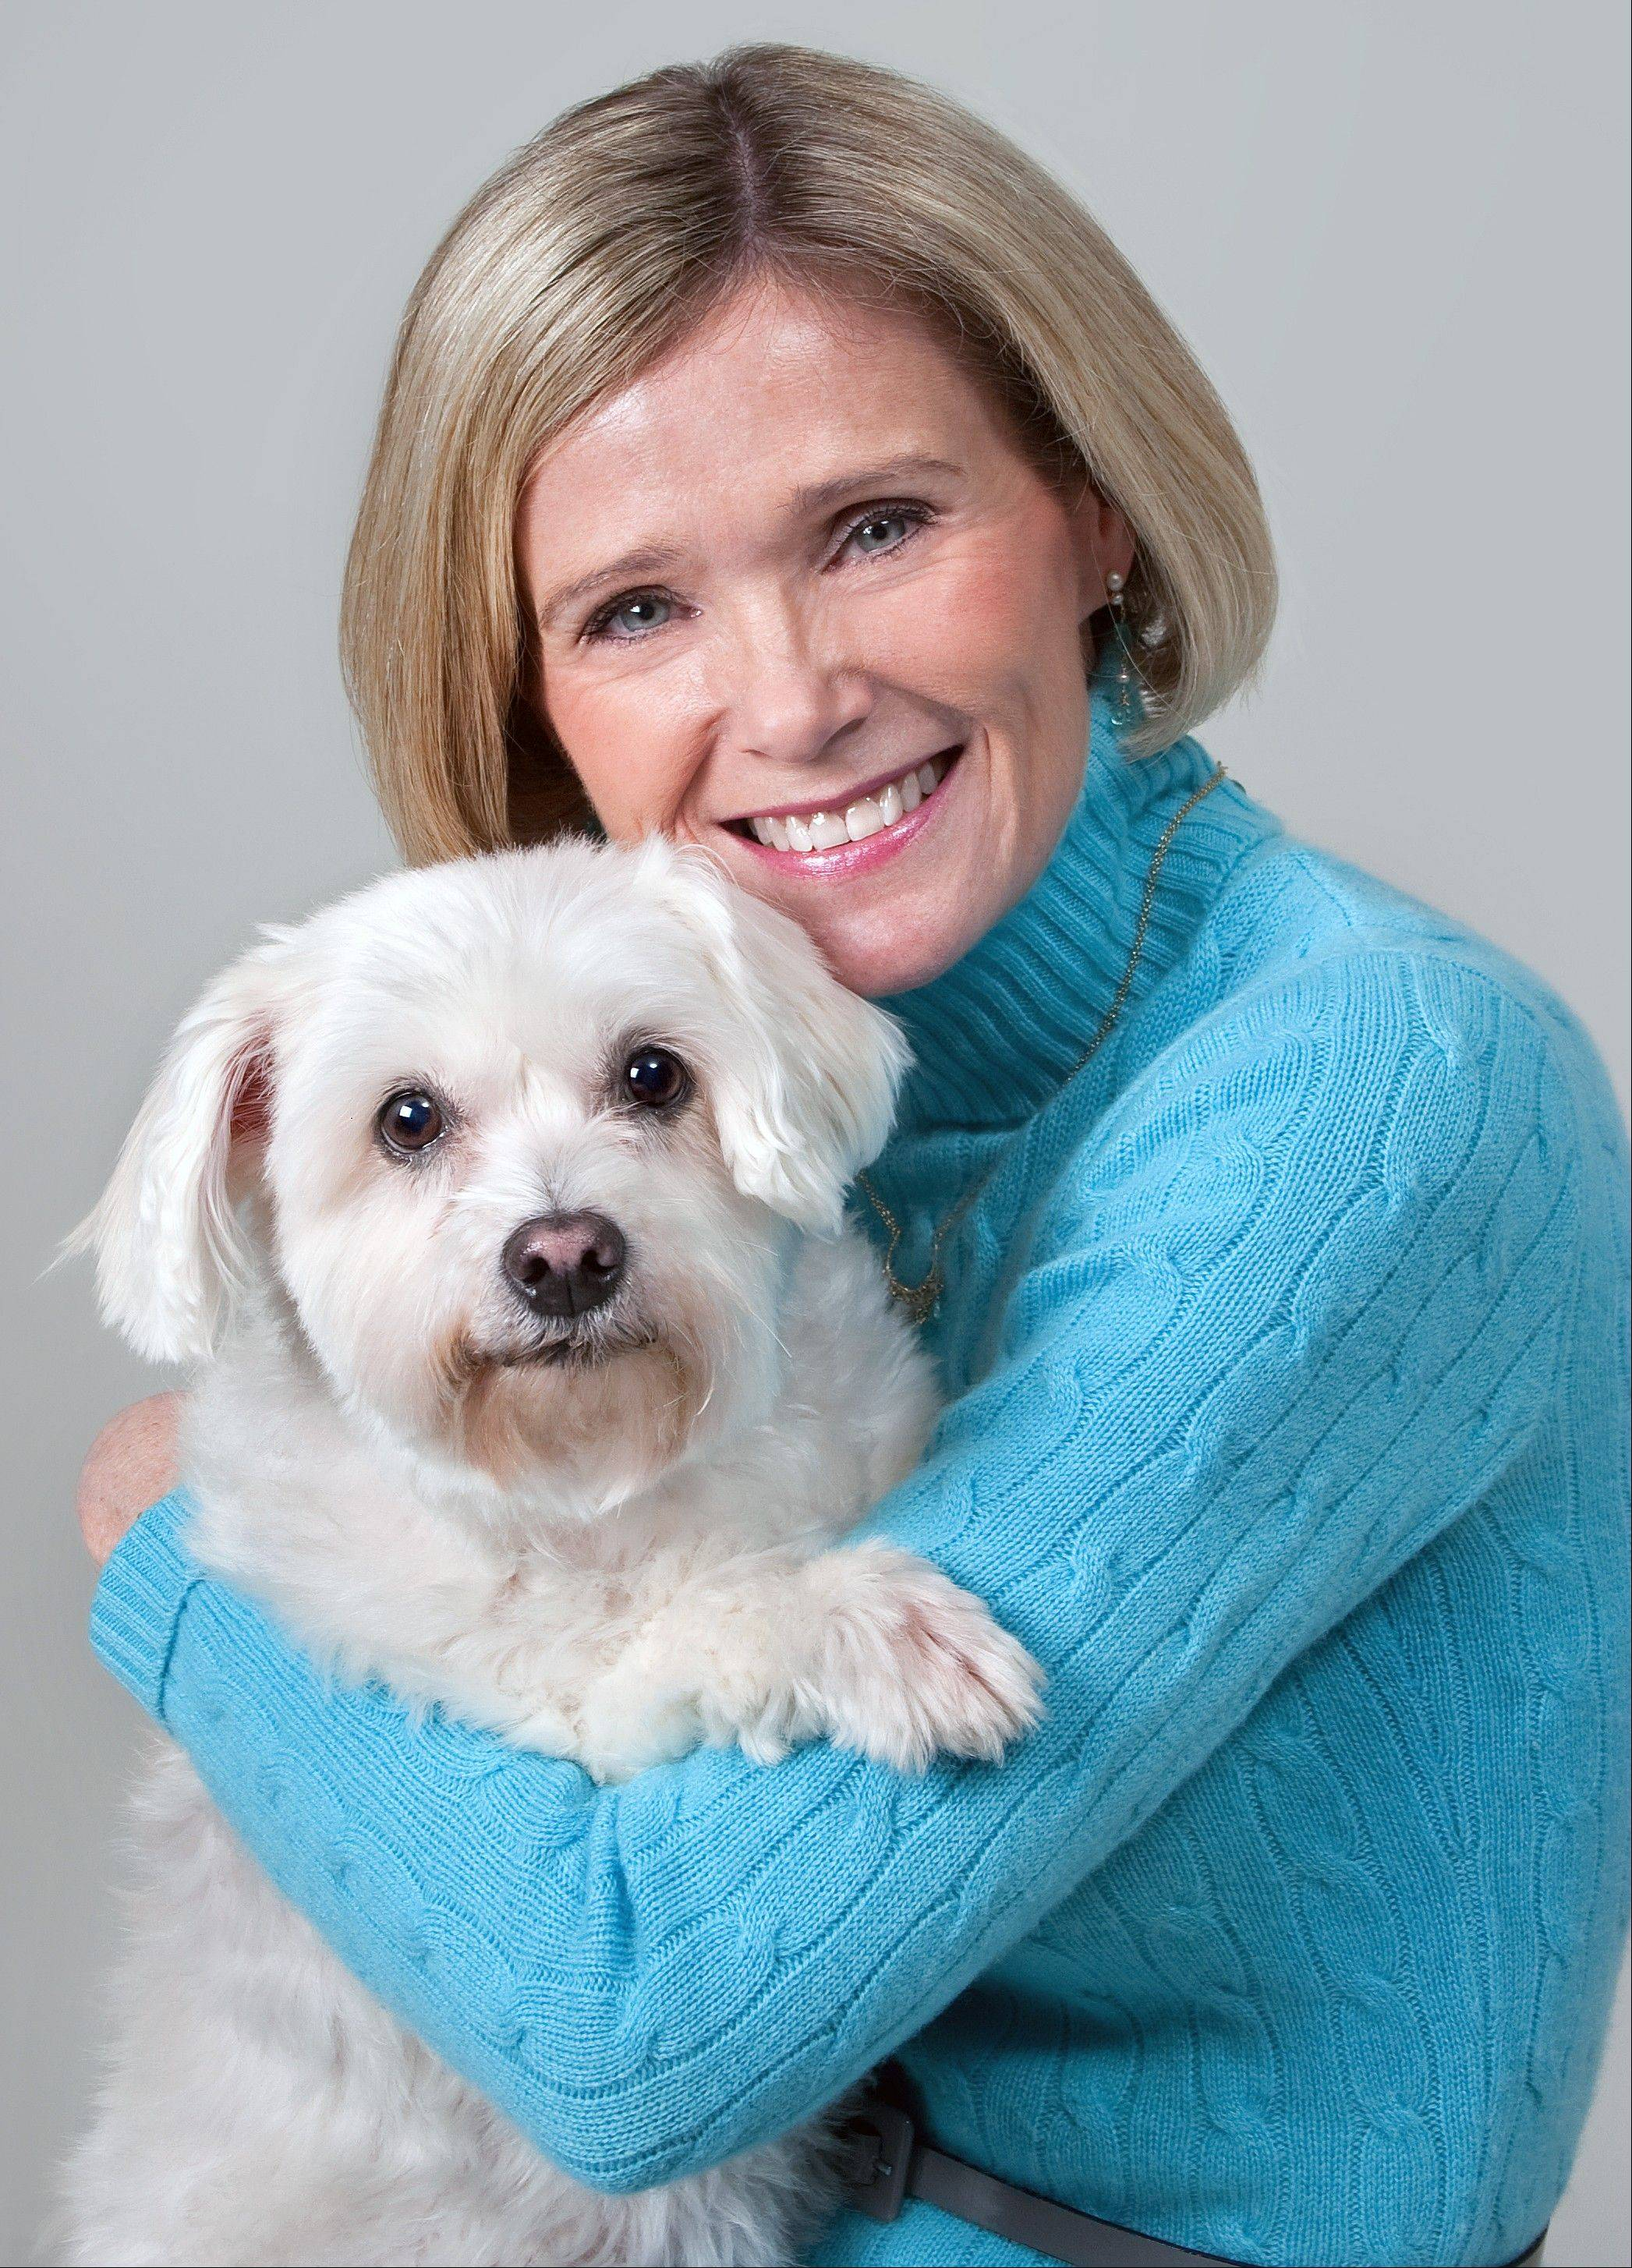 Robin Robertson Starr, the chief executive officer of the Richmond Society for the Prevention of Cruelty to Animals, said of Niblett: �He is one of the most beloved pets of my whole life, my dog that I adore with all of my heart. I adopted him after he was returned to us.�